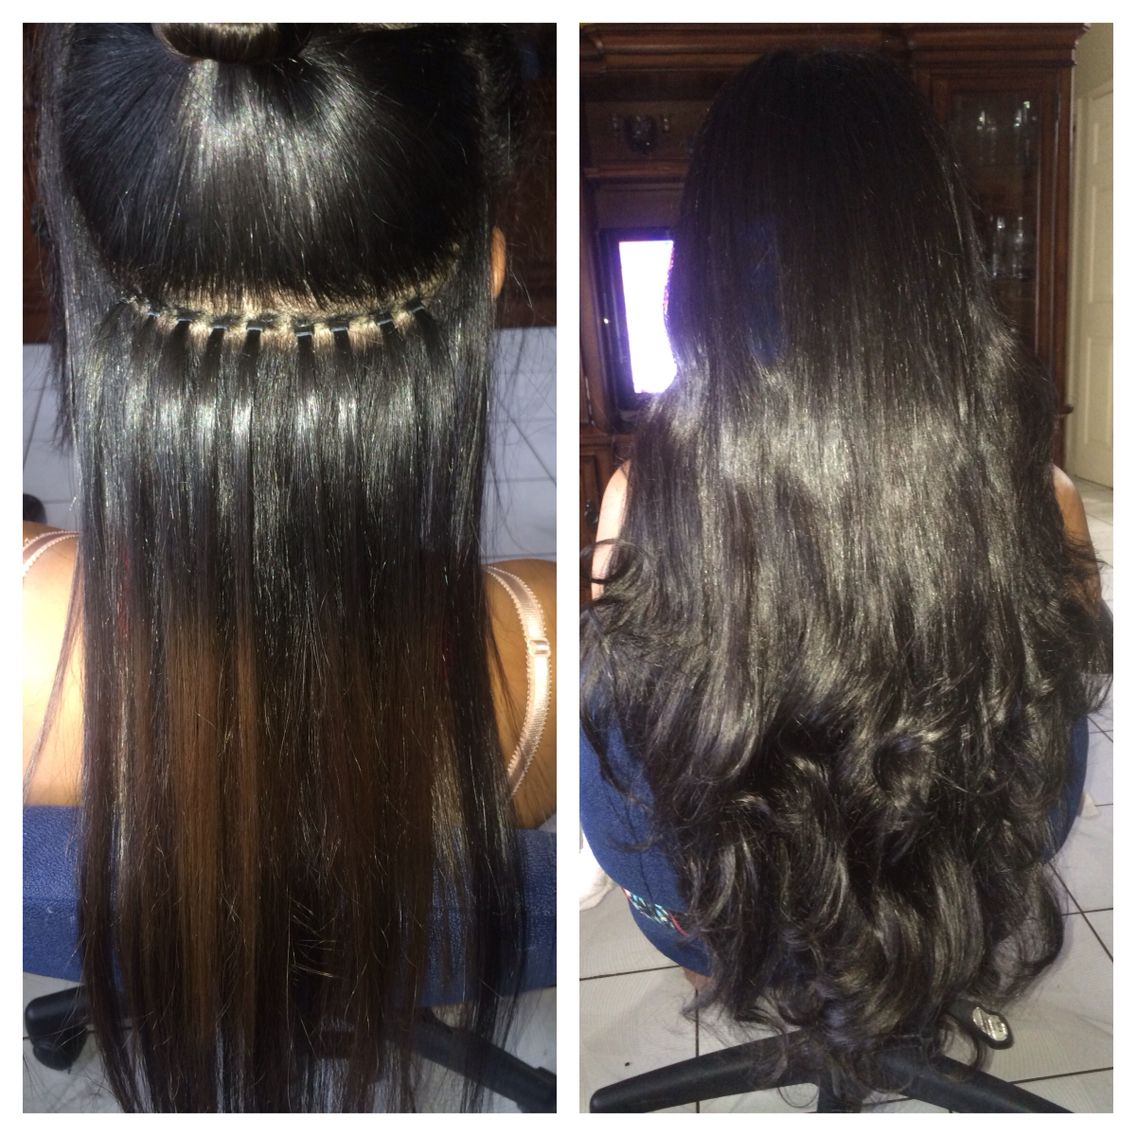 Microbeads Braidless Sew In Technique Mbbs Installed By Yours Truly Gucciwitit To Book App Braidless Sew In Microlink Hair Extensions Sew In Extensions